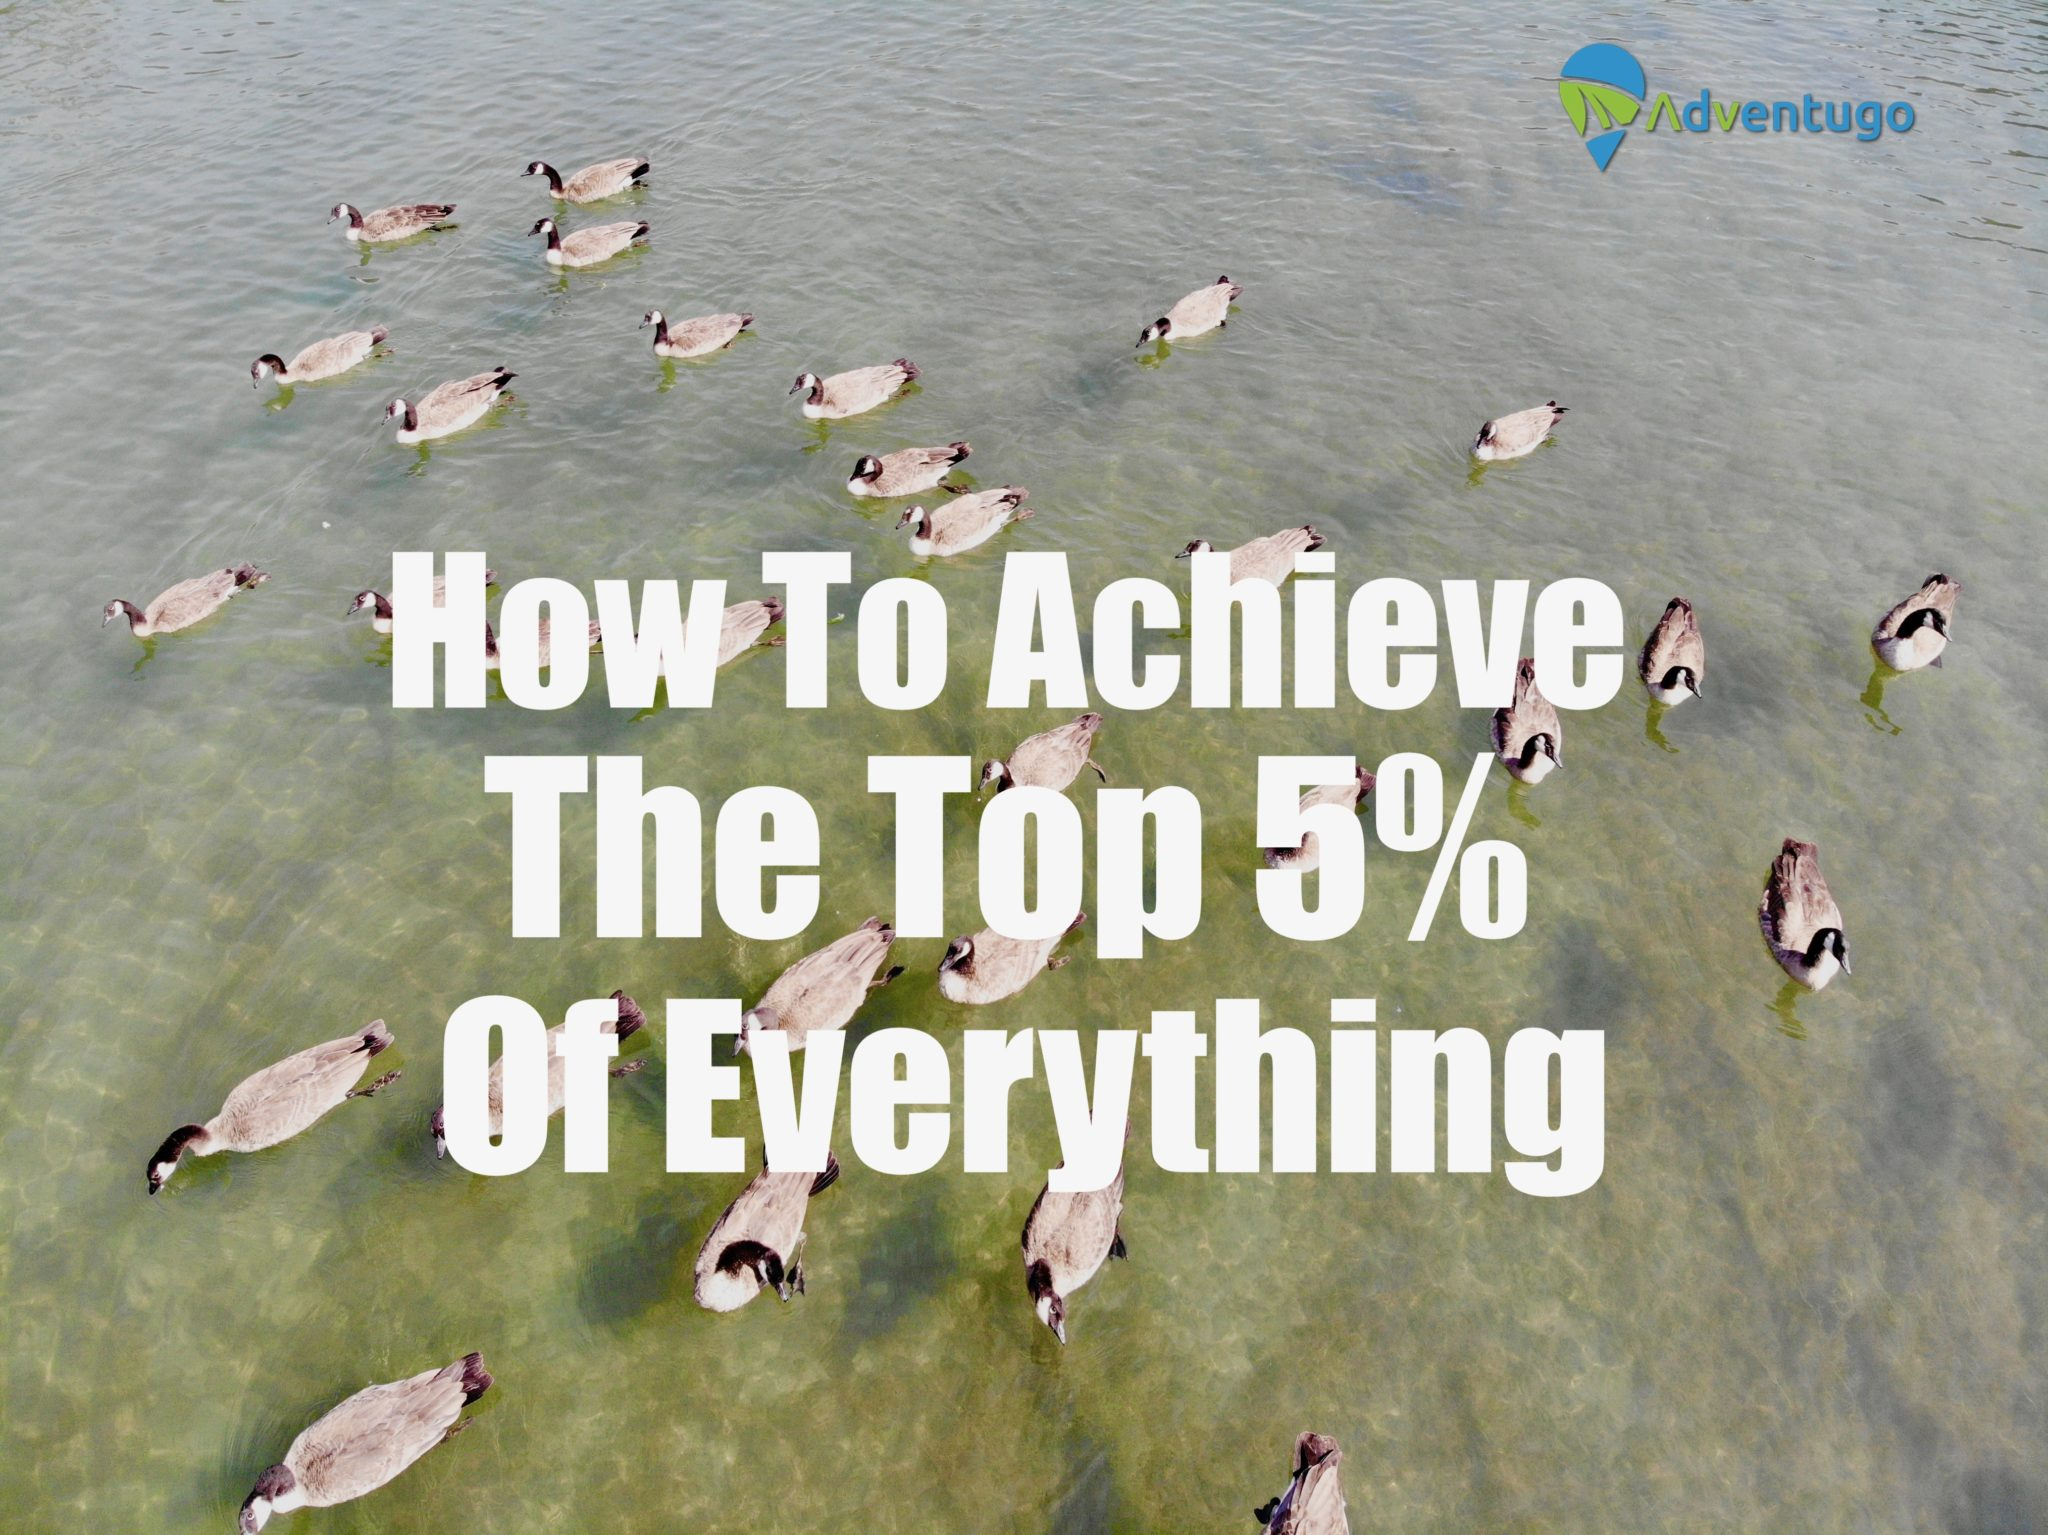 How to achieve the top 5% of Everything